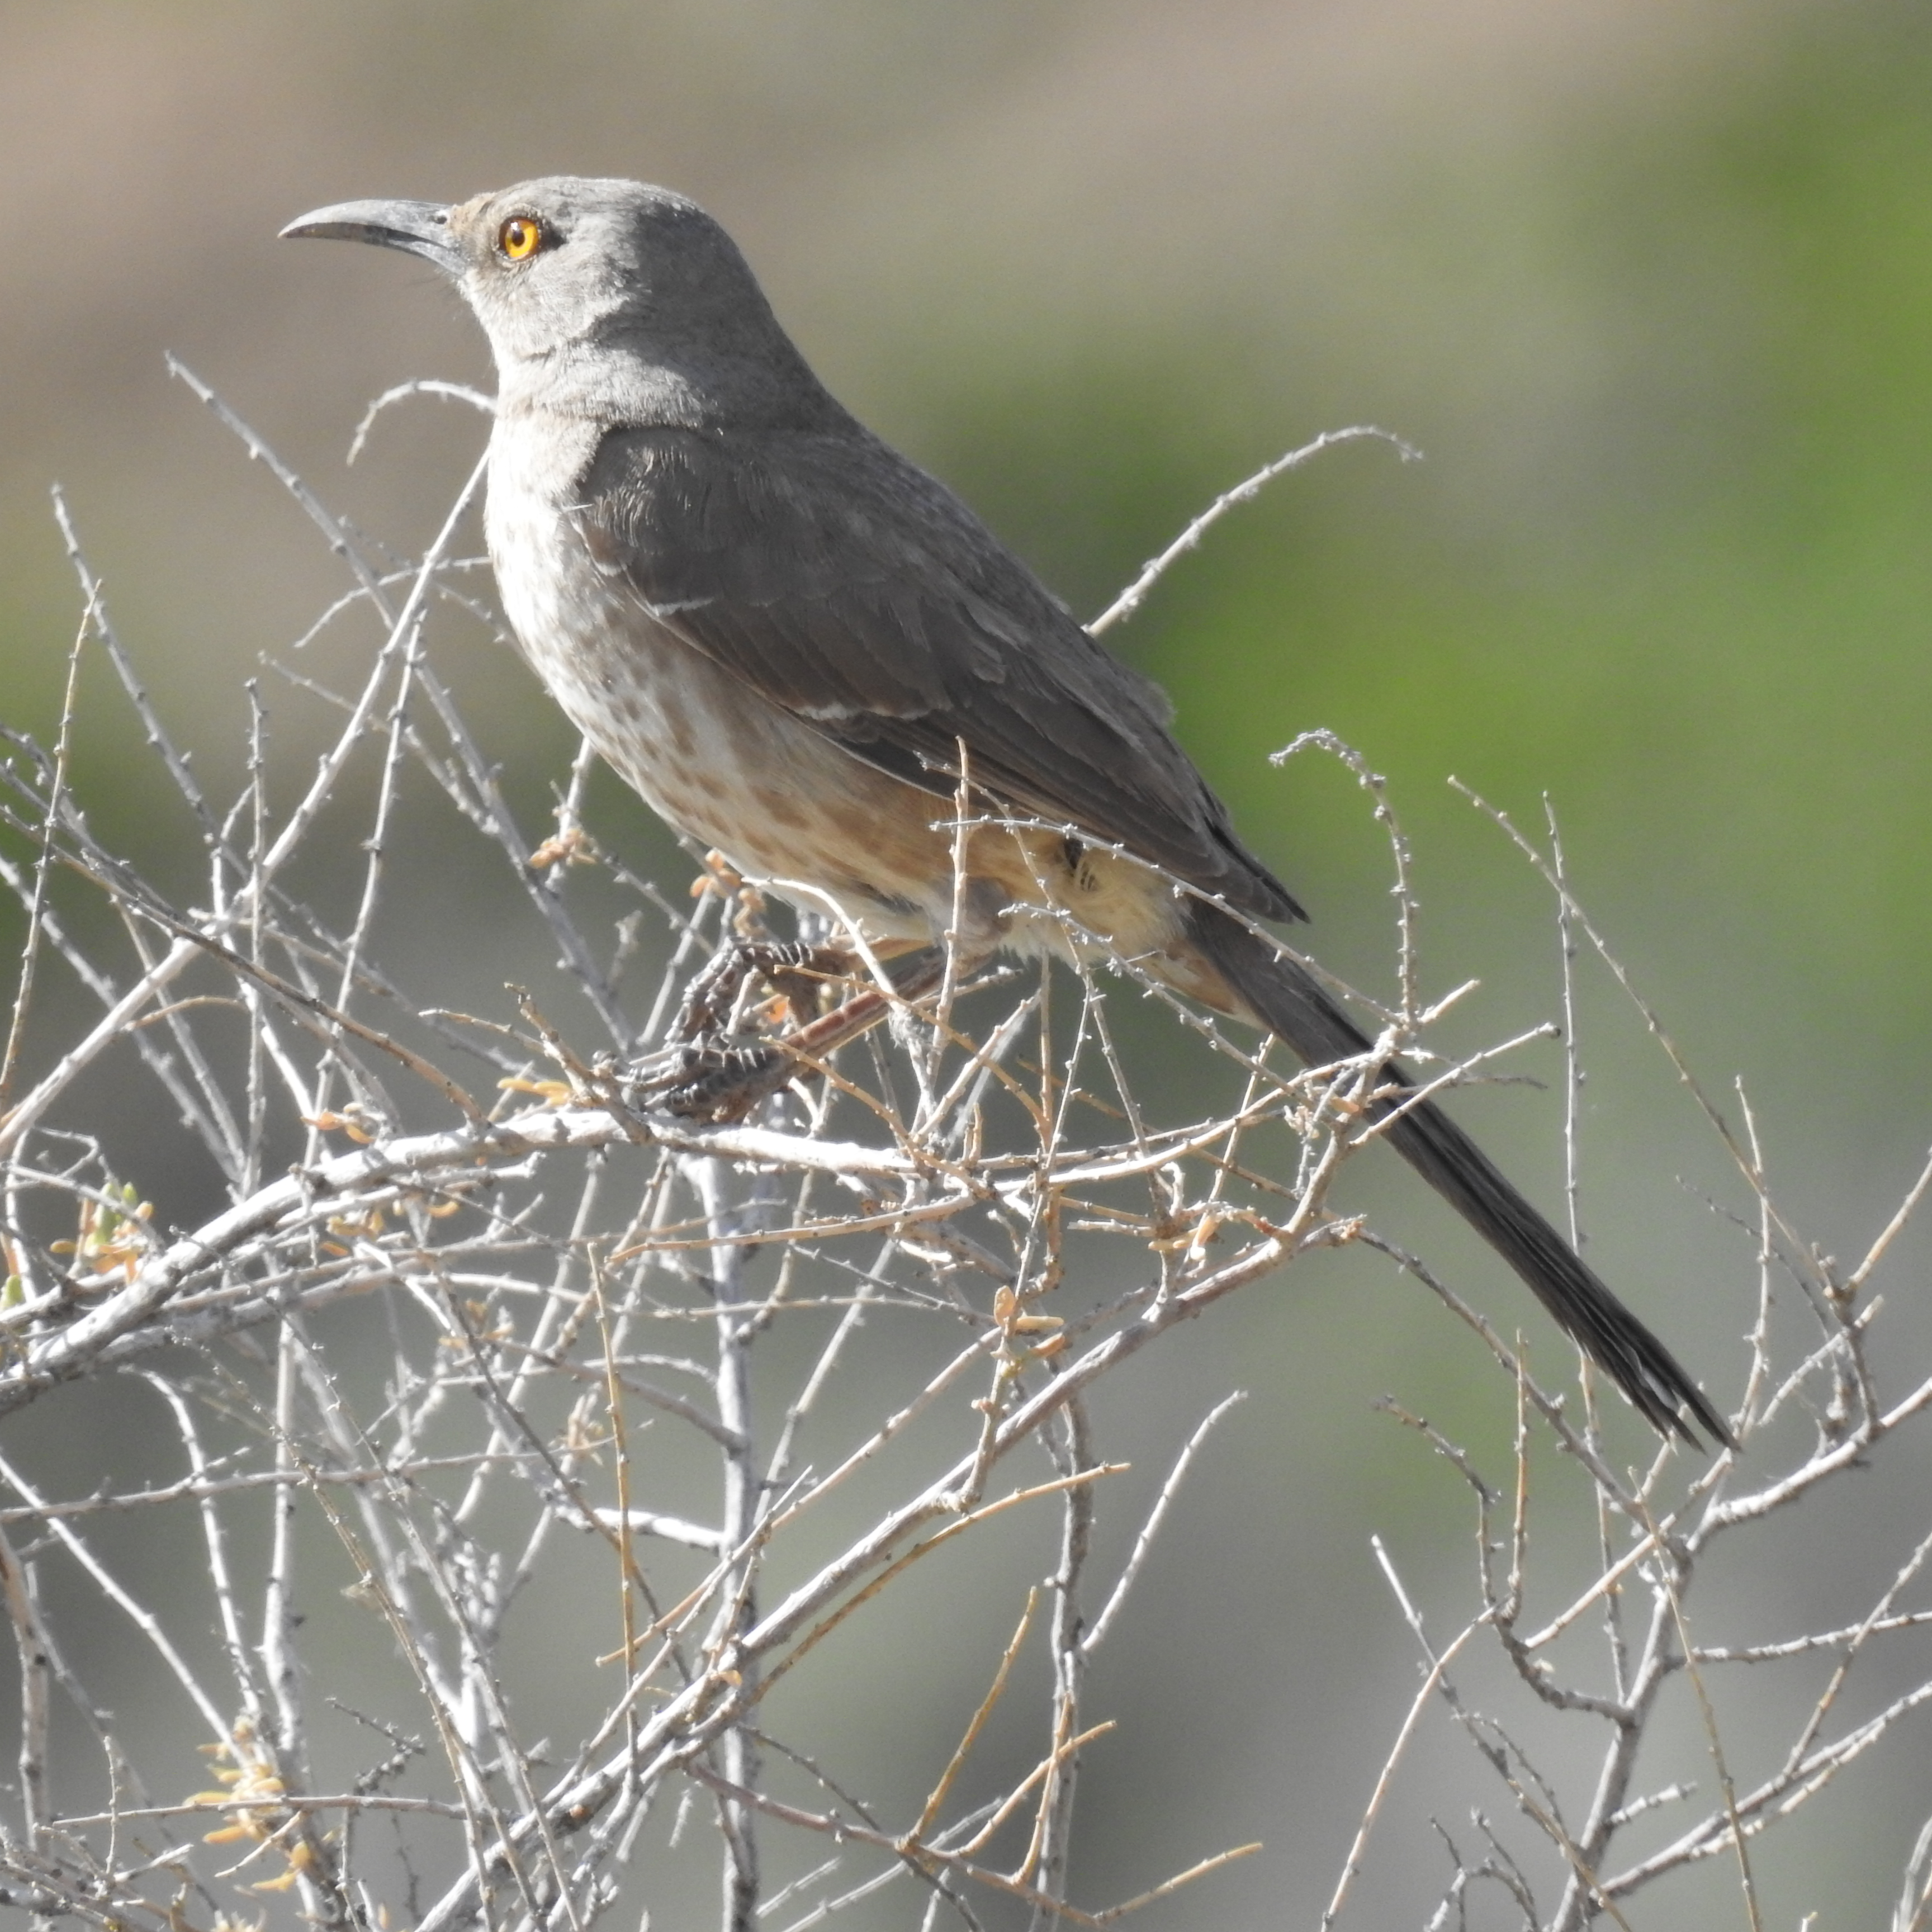 Best Camera For Birding 2020 5/22/2020 New Mexico Southern Rocky Mtn. and High Plains, Birding